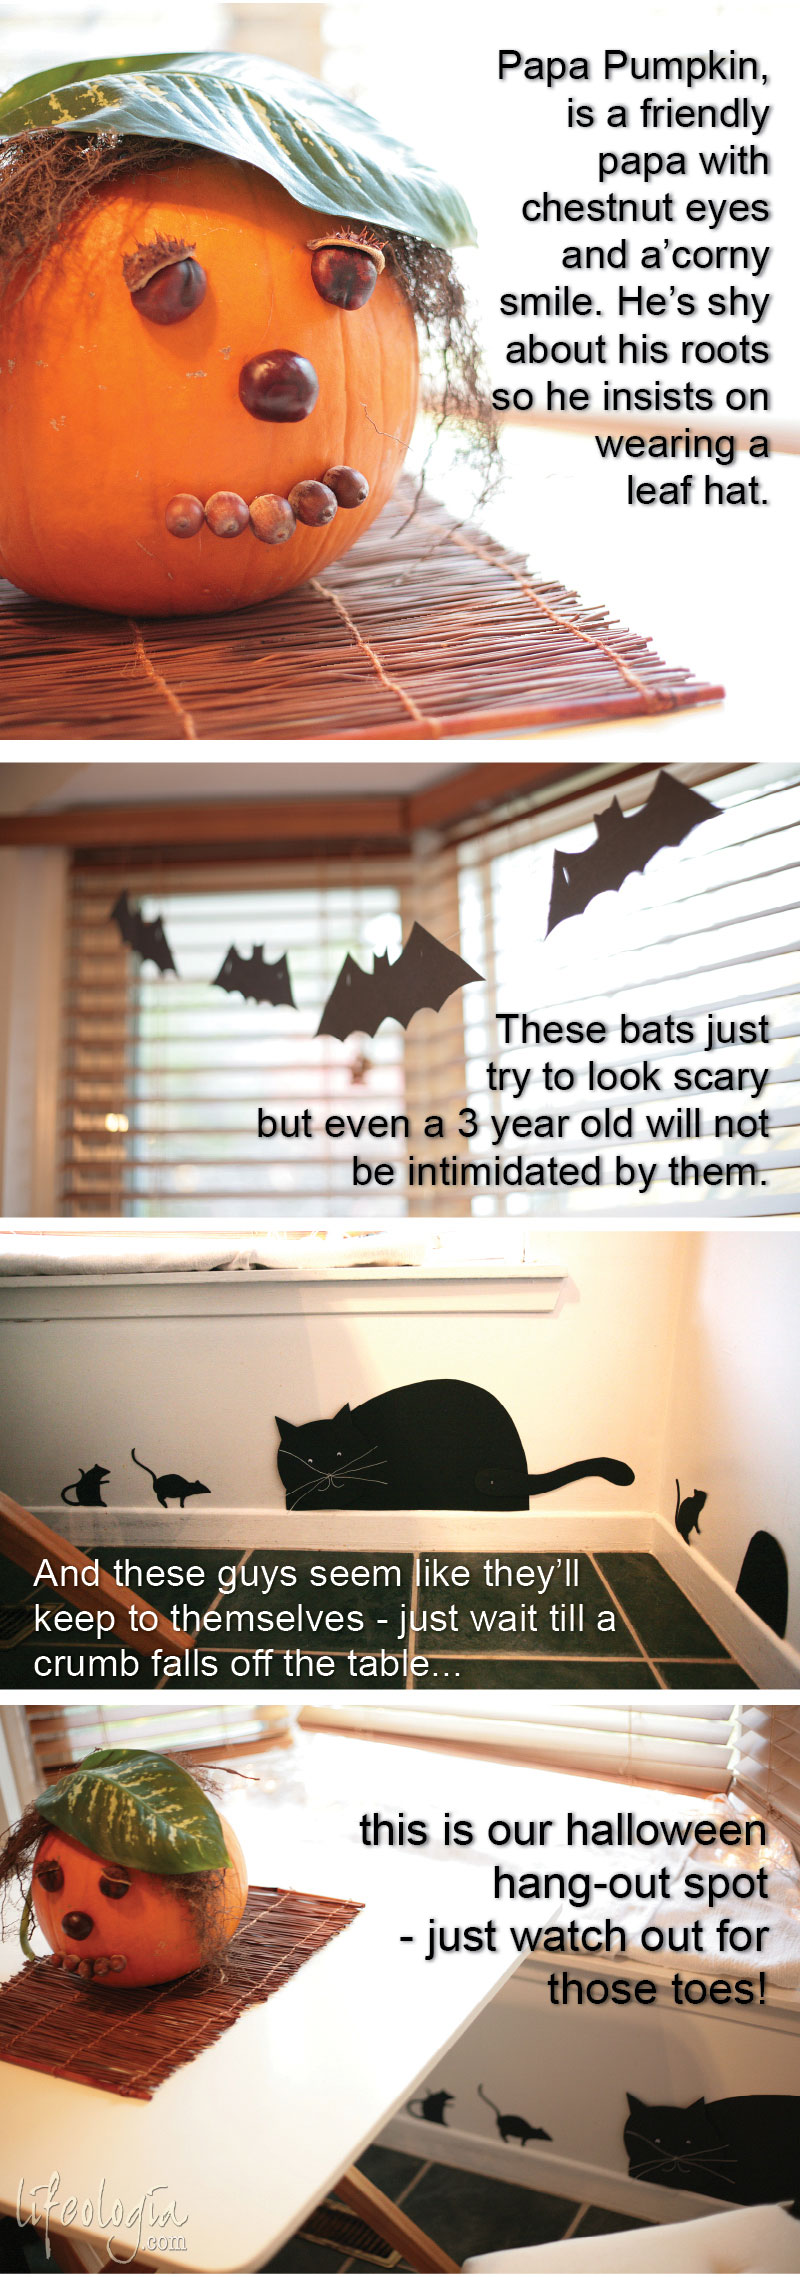 halloween-decorations inexpensive diy cat, mouse, bats, creative pumpkin